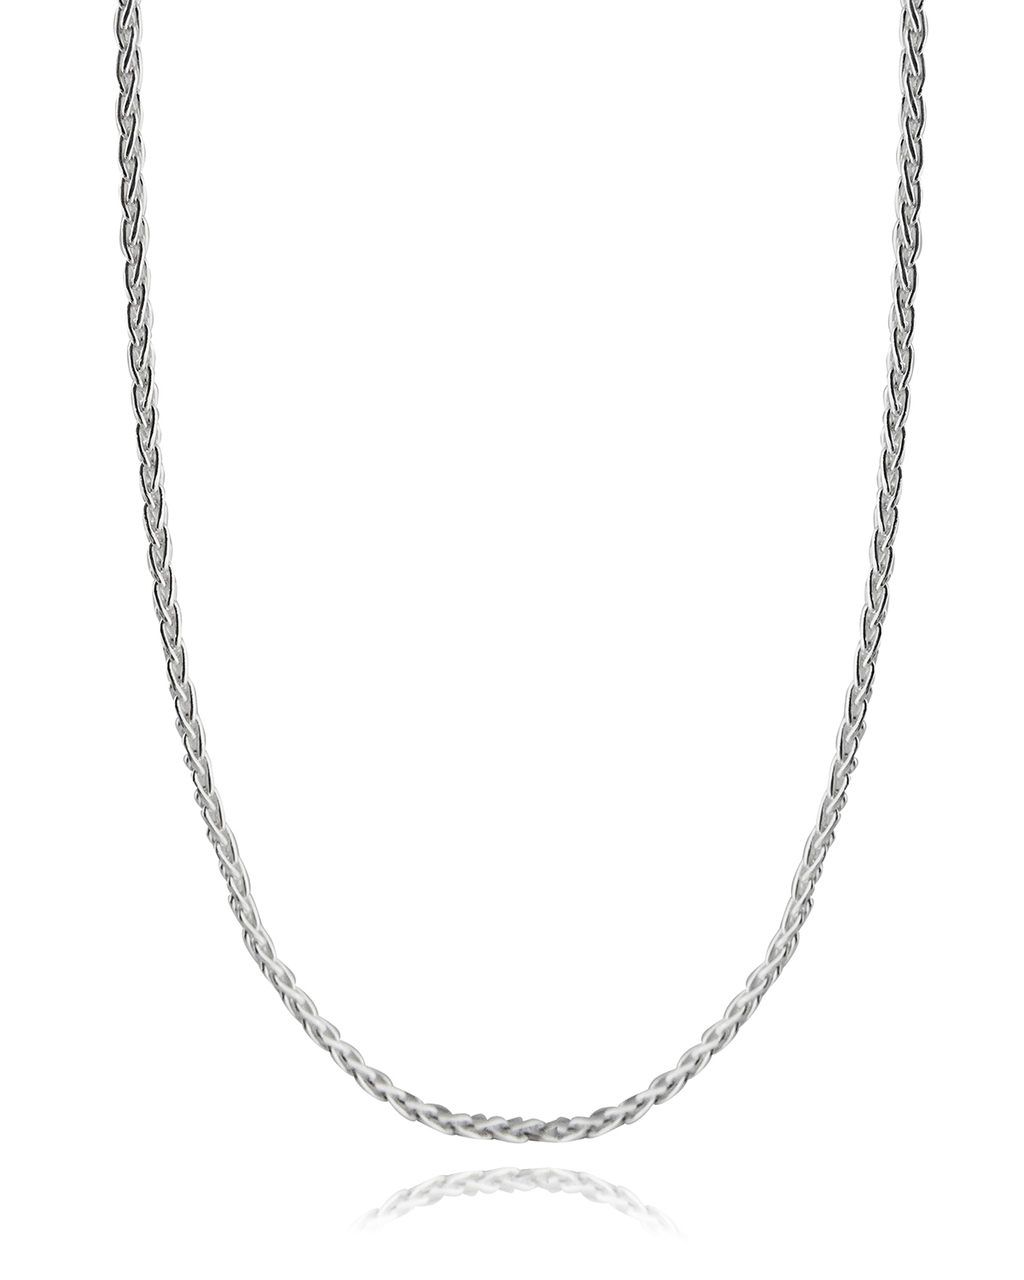 ''Spiga Wheat Chain - 925 Sterling Silver 3mm DIAMOND Cut Italy 16''''-30'''' NEW Italian''